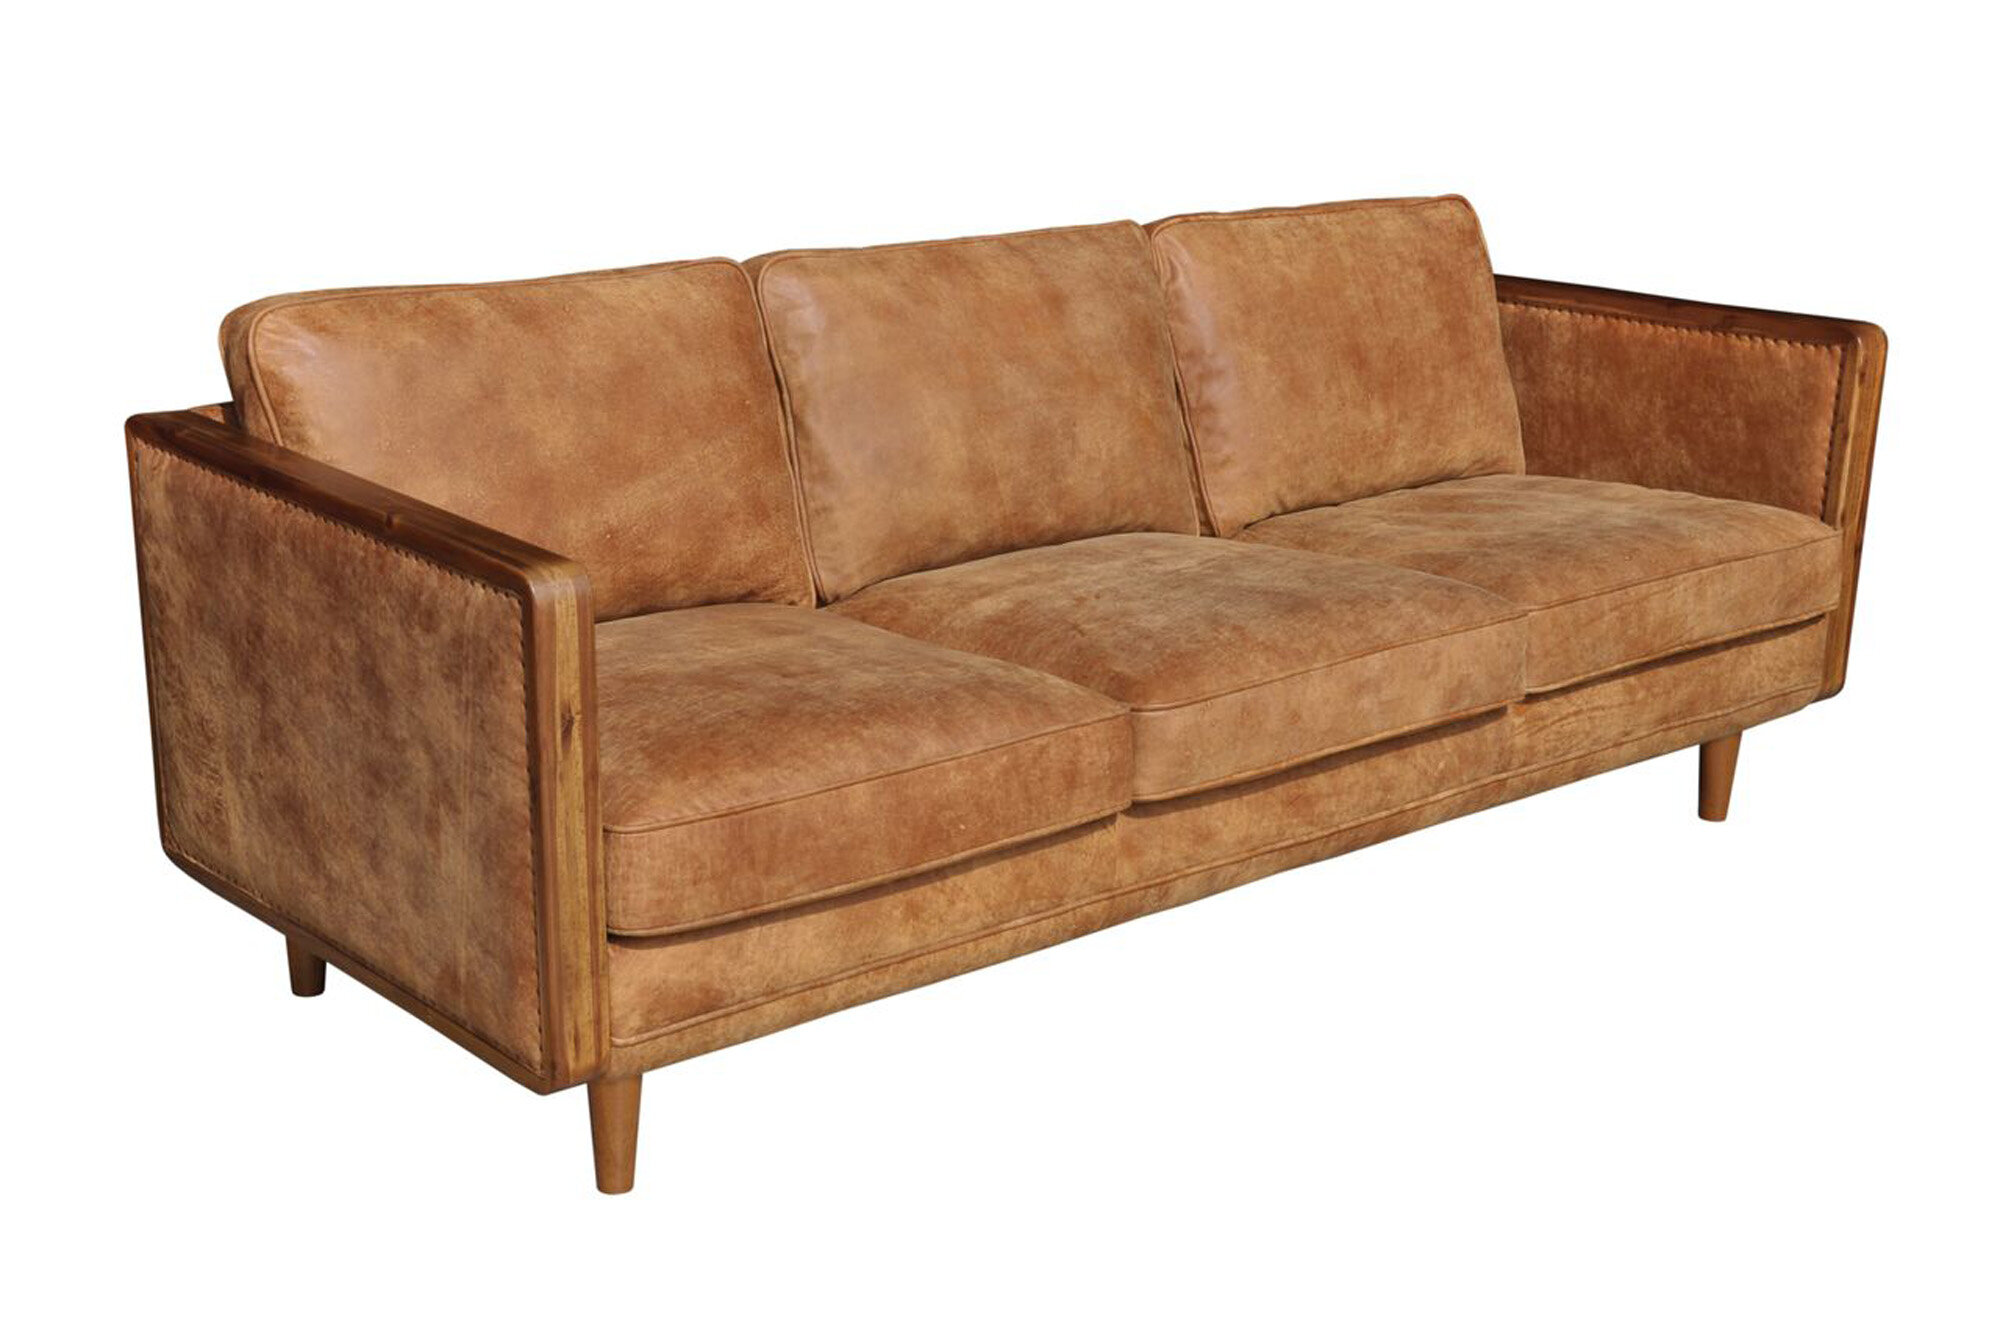 Union Rustic Lang Genuine Leather 82 Square Arm Sofa Reviews Wayfair